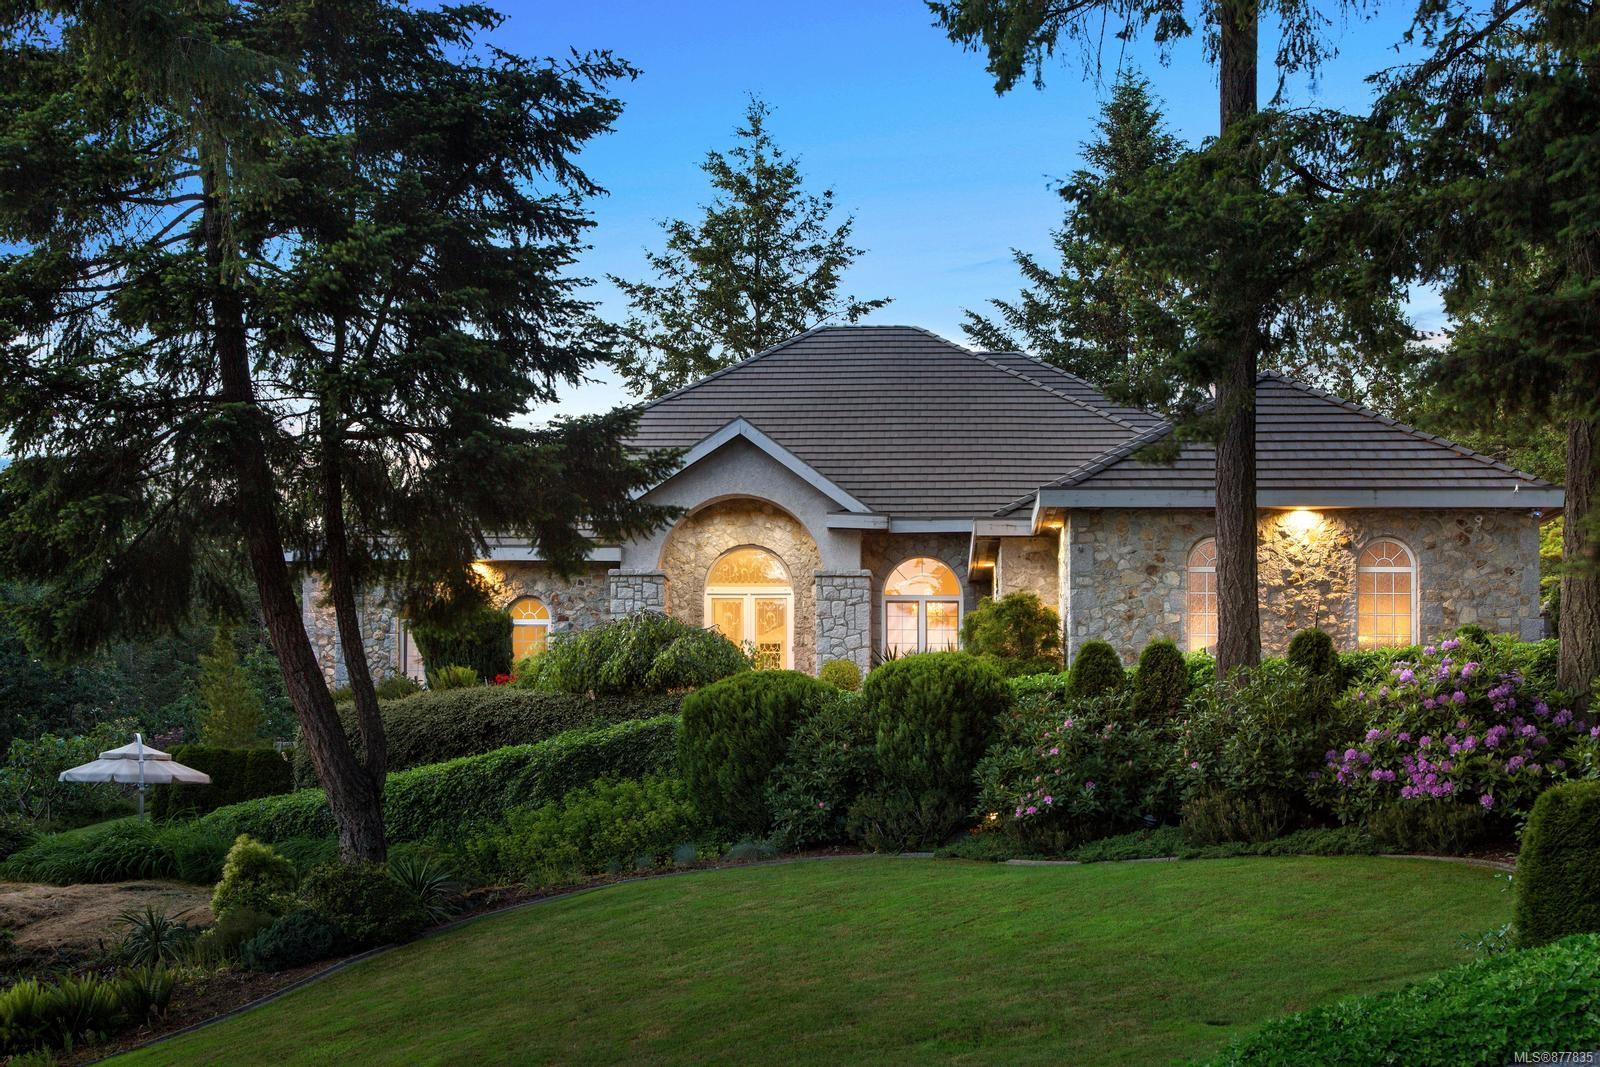 Escape to the prestigious Garden Gate Estates community. Custom built & the embodiment of grandeur & timeless beauty. Complete solitude with a beautiful privacy hedge & striking wrought iron gates. Quality is evident from roof tiles to granite cladding. Striking features such as vaulted ceilings, granite & bamboo floors, inset lighting, handsome built-ins & moldings showcase the elegance. 8000+sq ft with state of the art kitchen; inviting family rm, large DR & LR, lrg office, primary suite w/5pc bath +2 more bedrooms & baths. Lower level are 2 bedrooms & spa styled baths, wine cellar, movie theatre & large entertainment area. Enviable outdoor living, surrounded by a beautiful Garry Oak park with a private well for irrigation. 2.23 acre park-like property affords endless enjoyment, with mature trees, manicured gardens, expansive patio sections, tranquil gazebo & stunning stonework. Take advantage of nearby beaches, trails, Butchart Gardens & the world class amenities of Brentwood Bay.